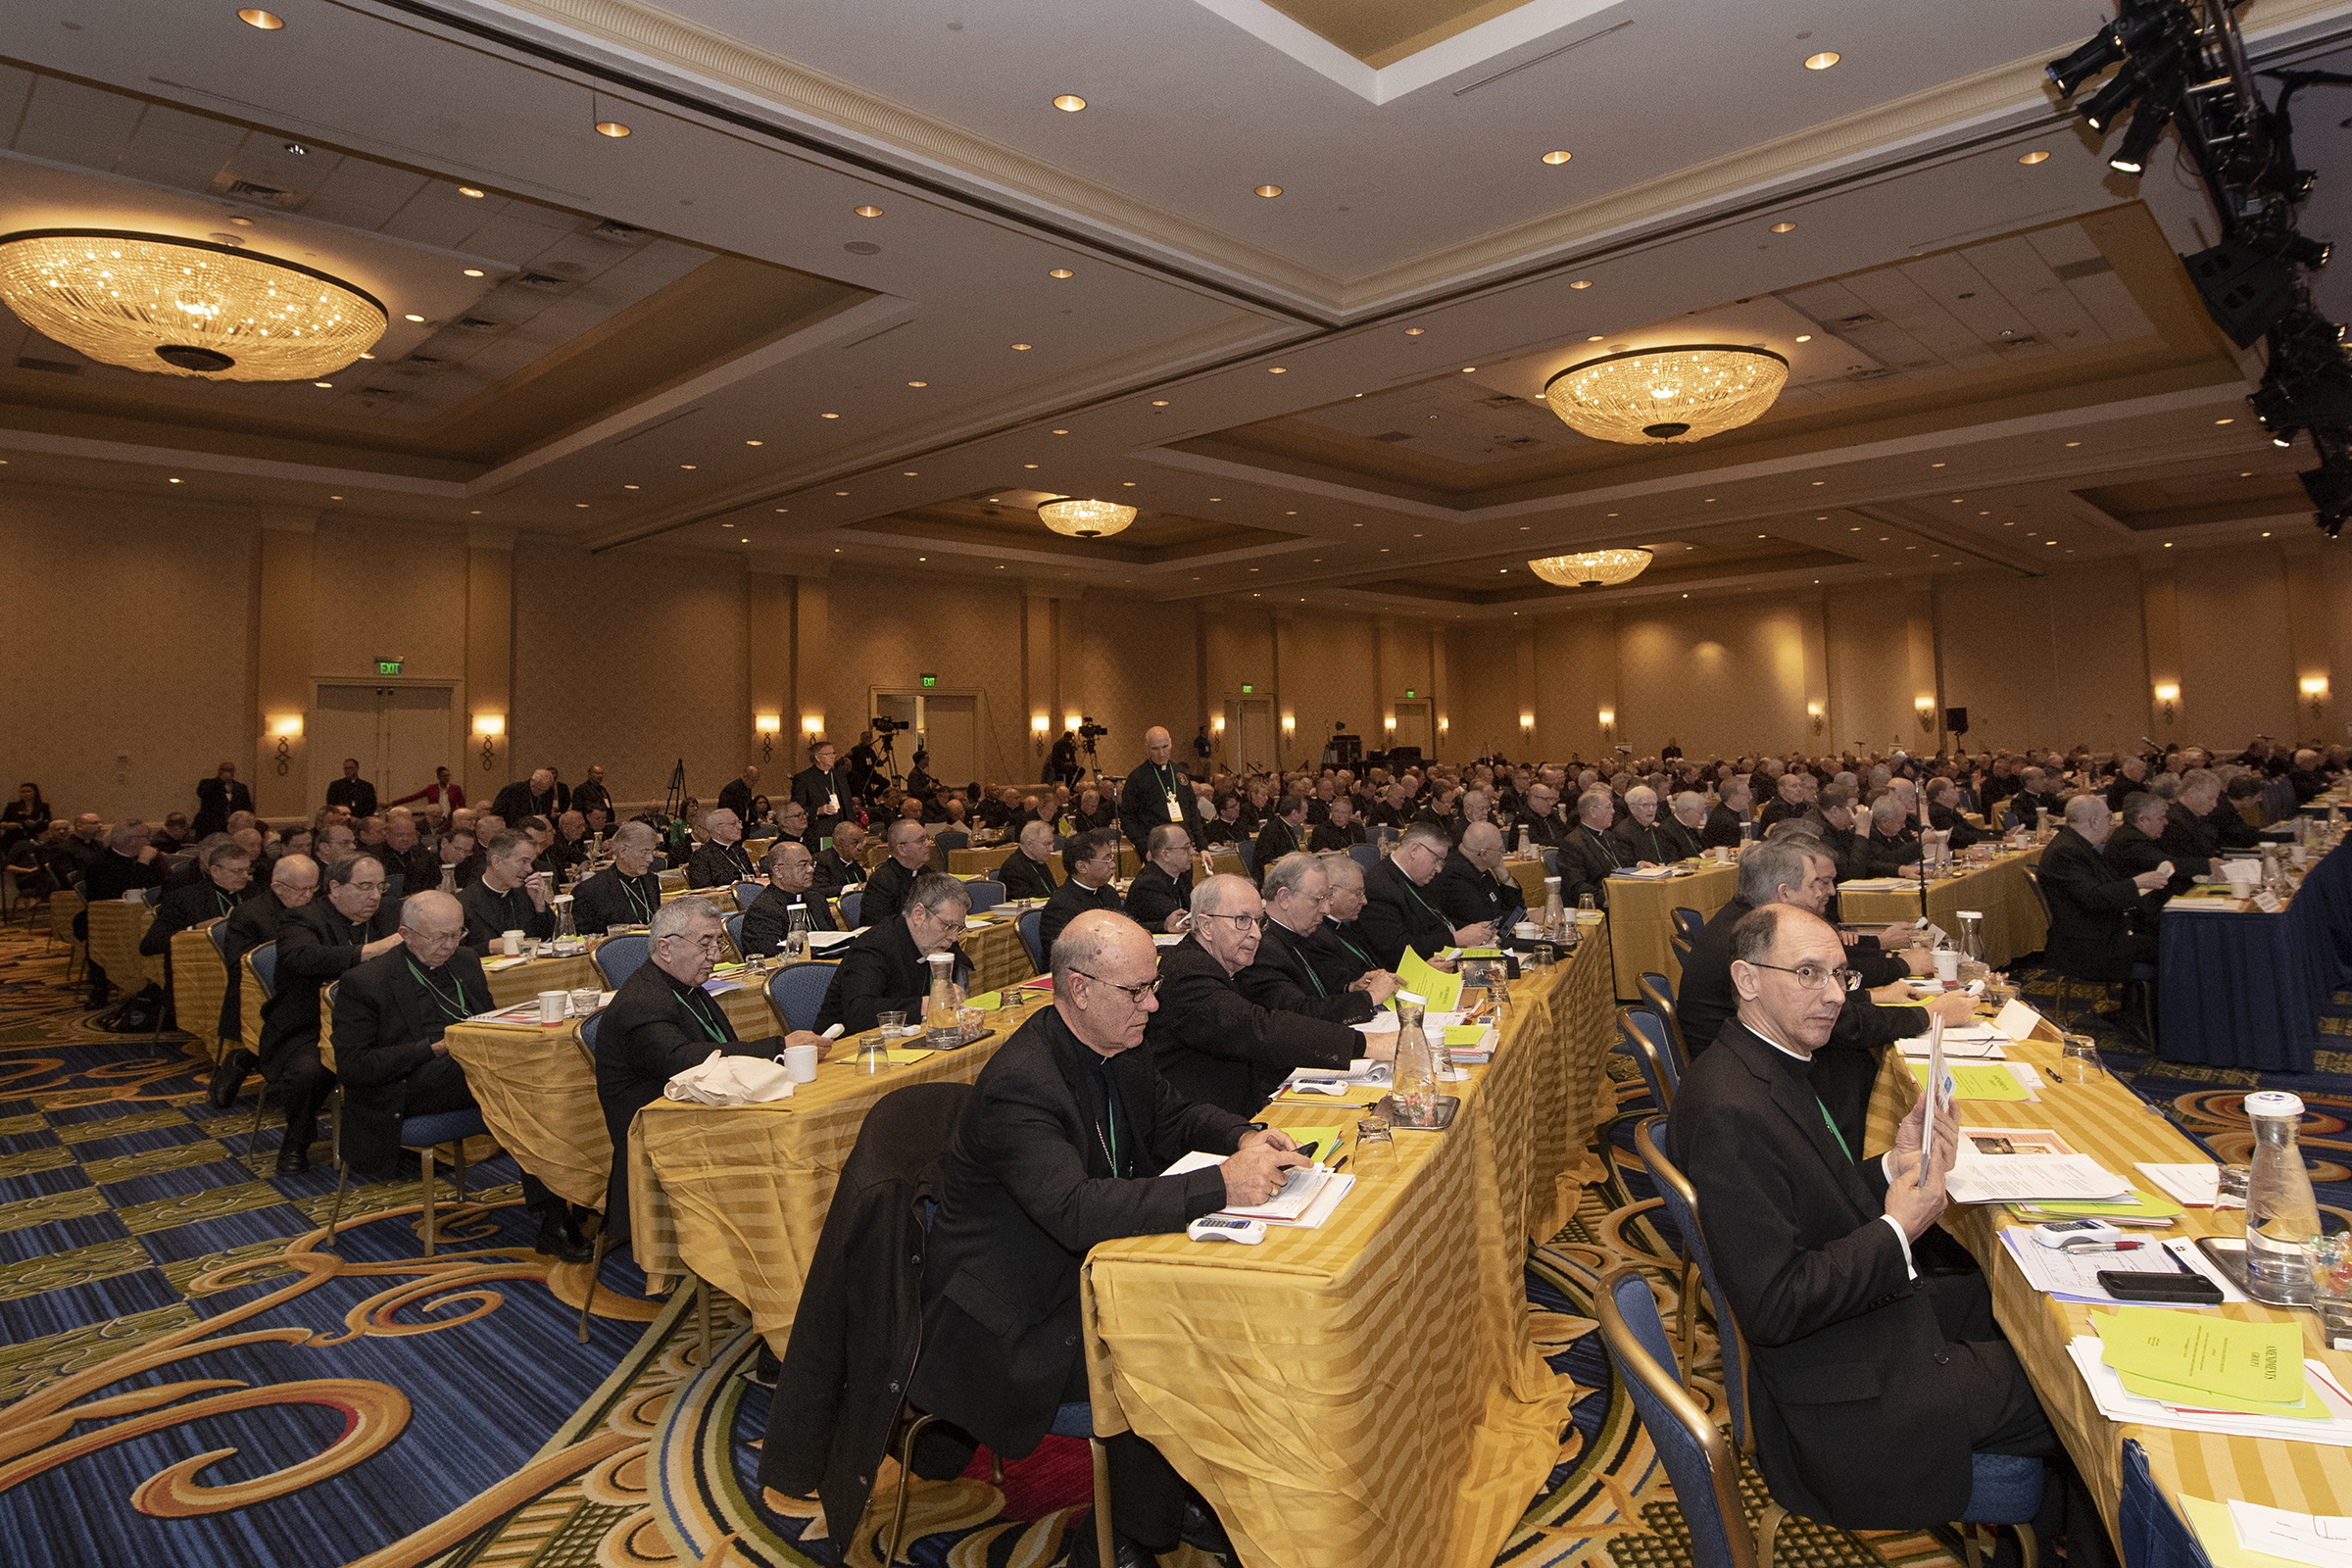 Bishops gathered during the U.S. Conference of Catholic Bishops at the Baltimore Marriott Waterfront on Wednesday.